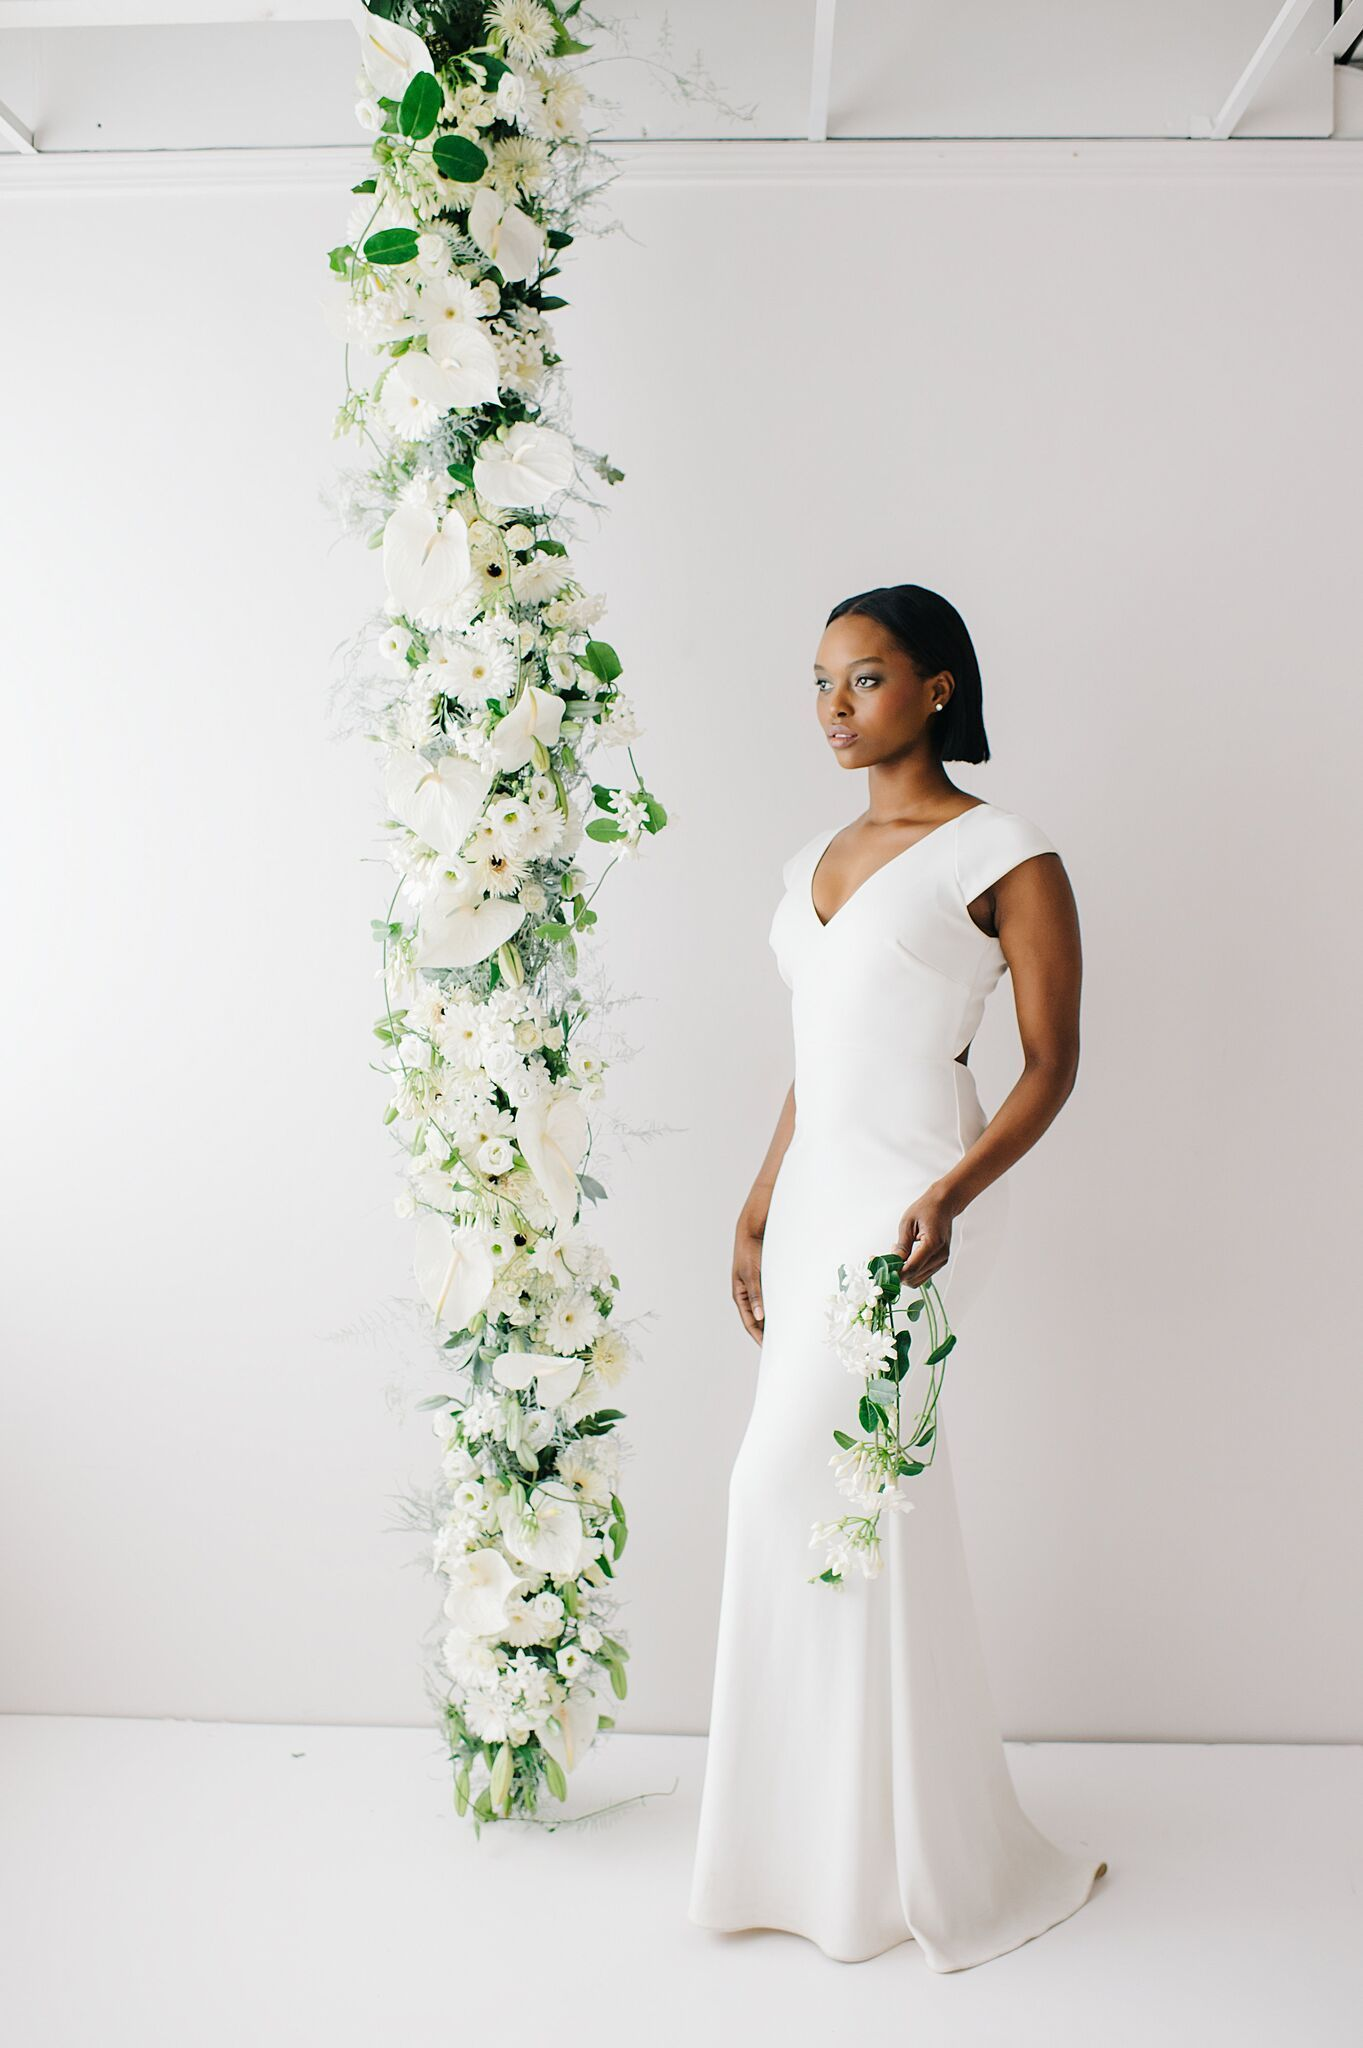 Learn How To Make This Design And More Www Passionflowersue Com Floral Design Floral Design Classes Modern Wedding Flowers